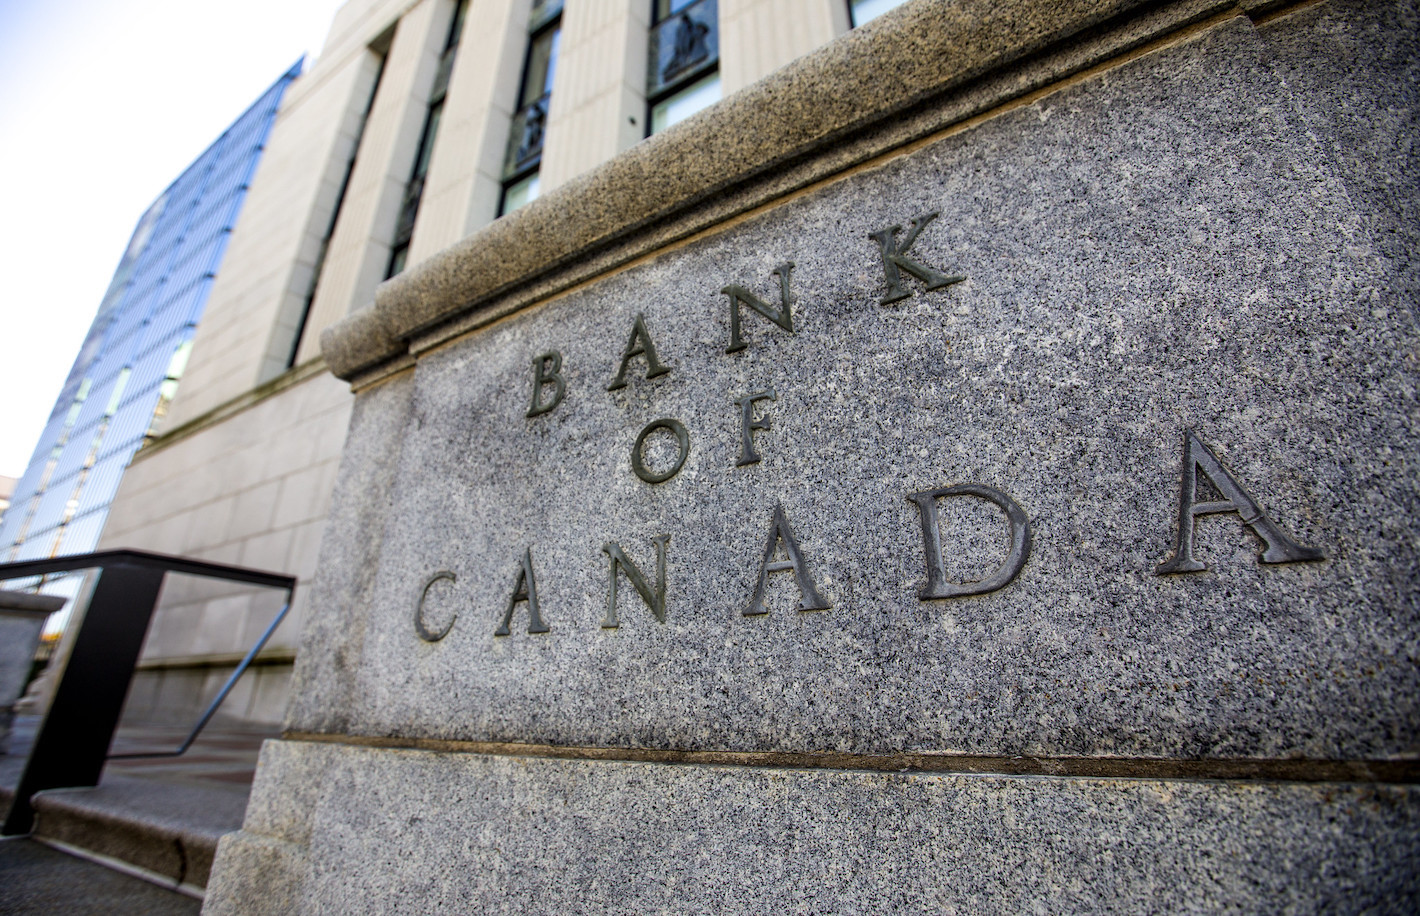 Canada CBDC 'Probably Necessary' for Competition, Central Bank Says in Paper